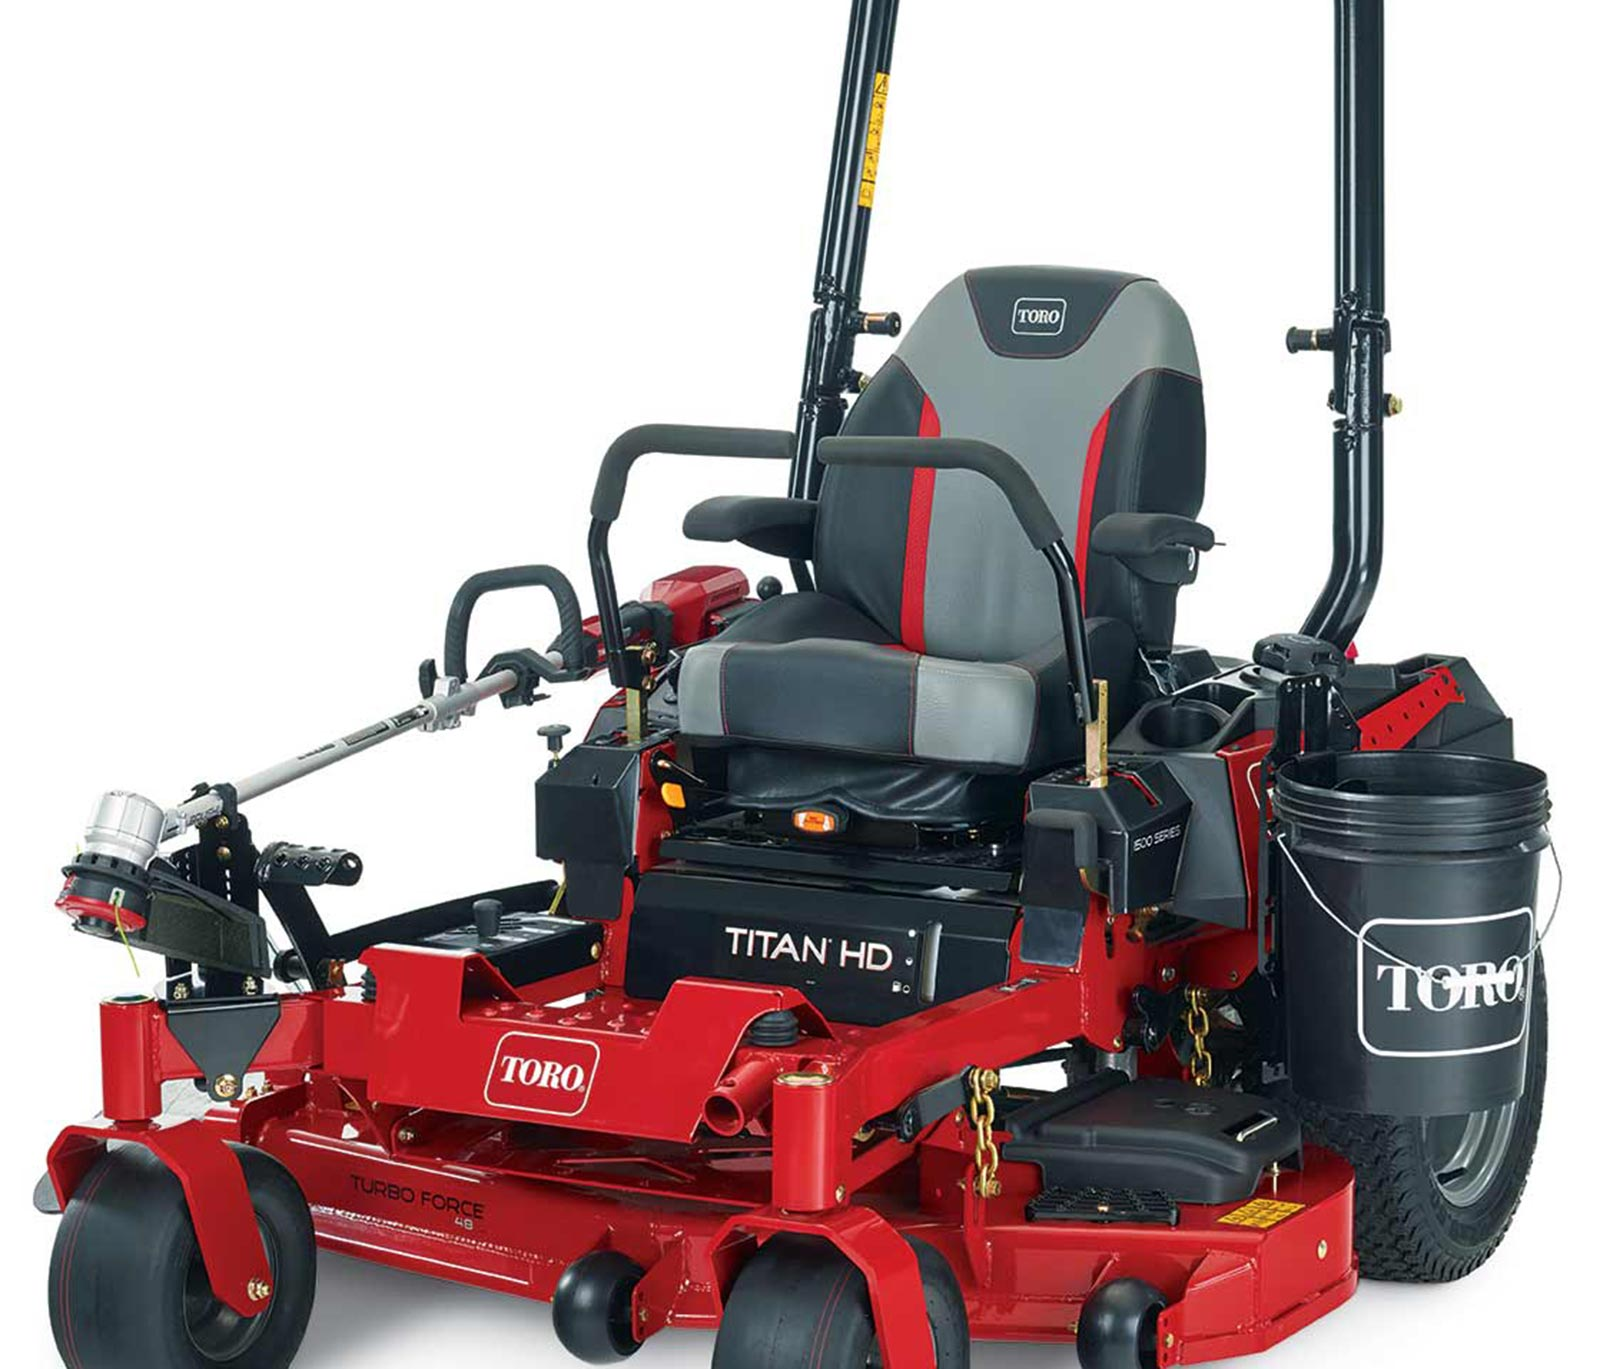 Toro Showroom: Lawn Mowers, Vacuums, Plows, Loaders & More